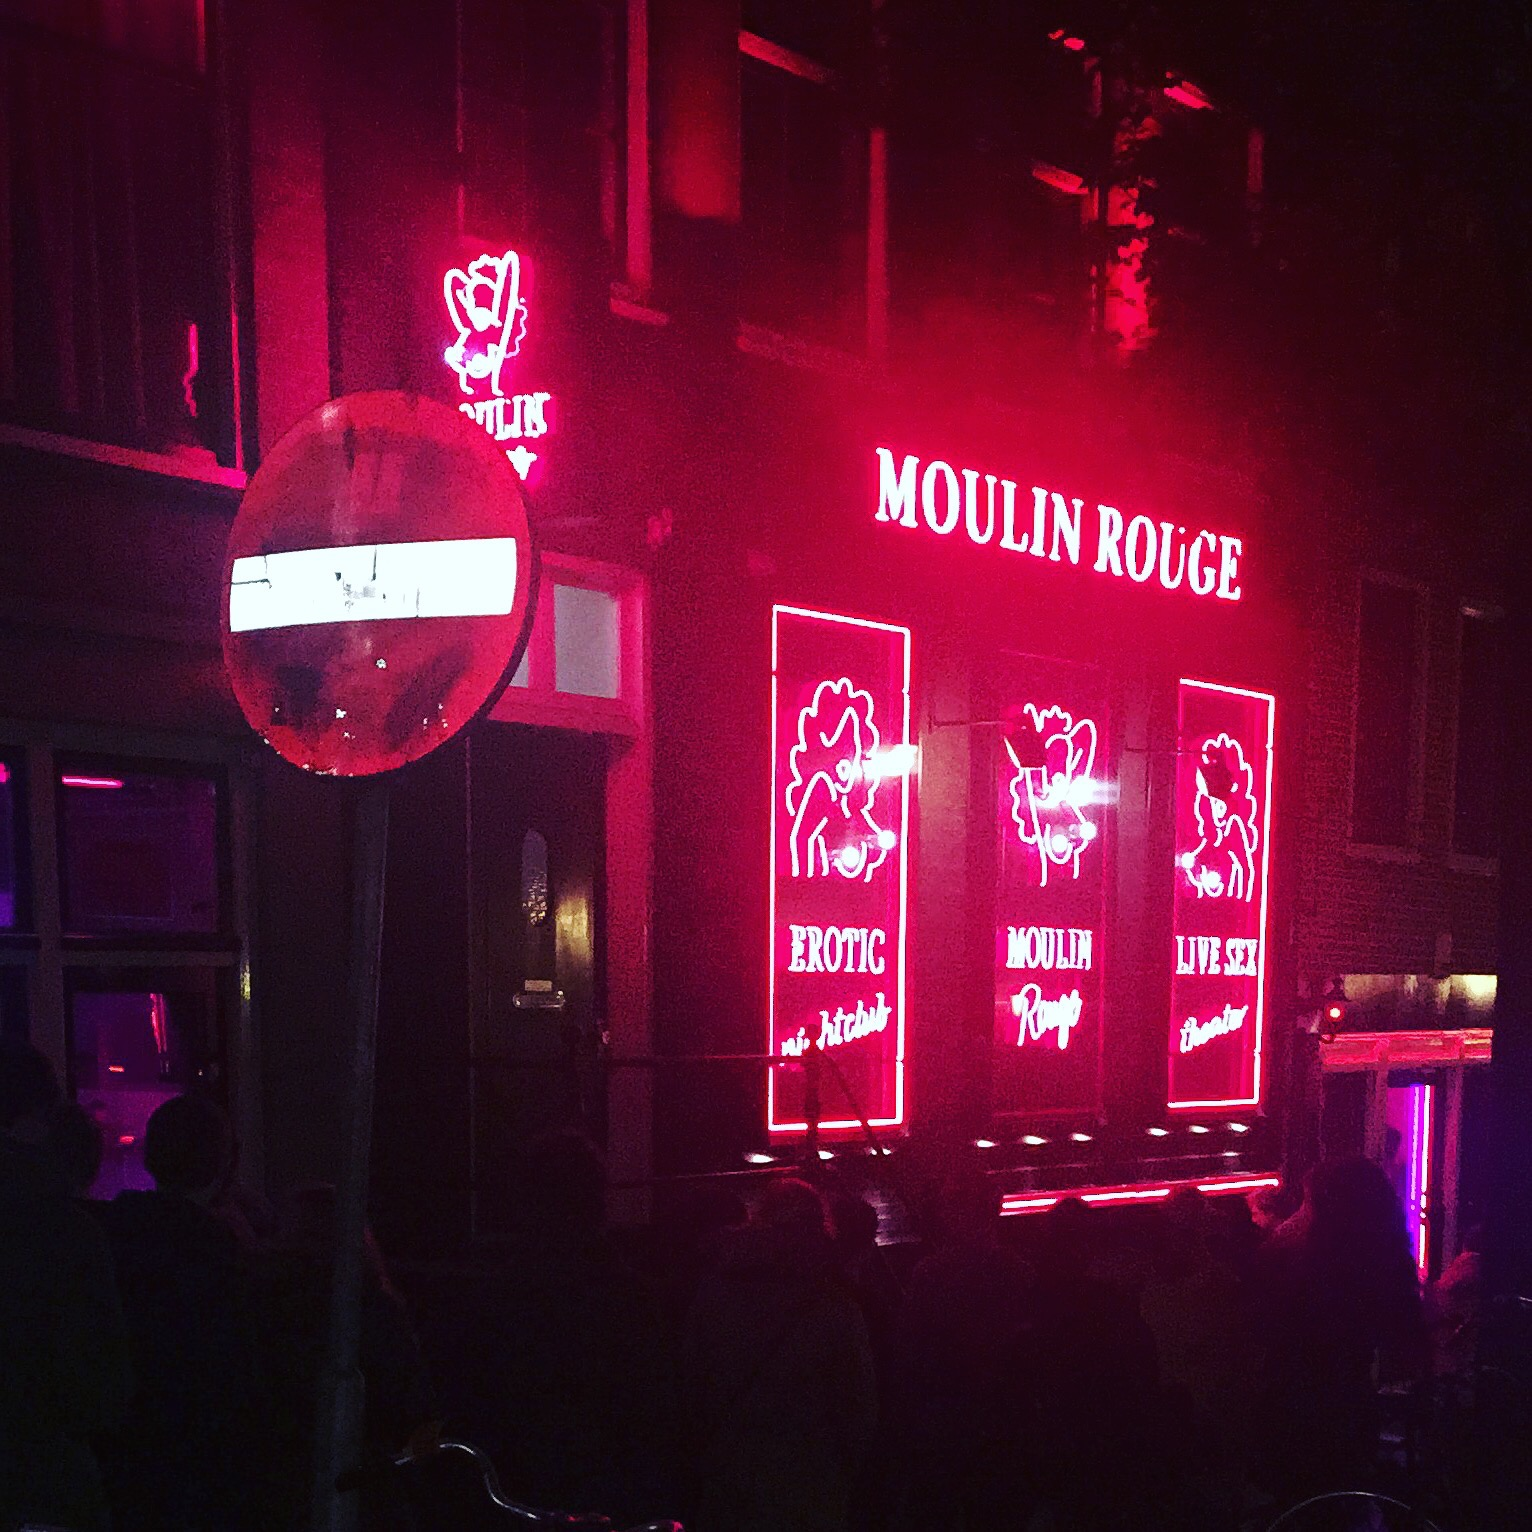 This is about as wild as you can get for nighlife! Red Light District, Amsterdam.